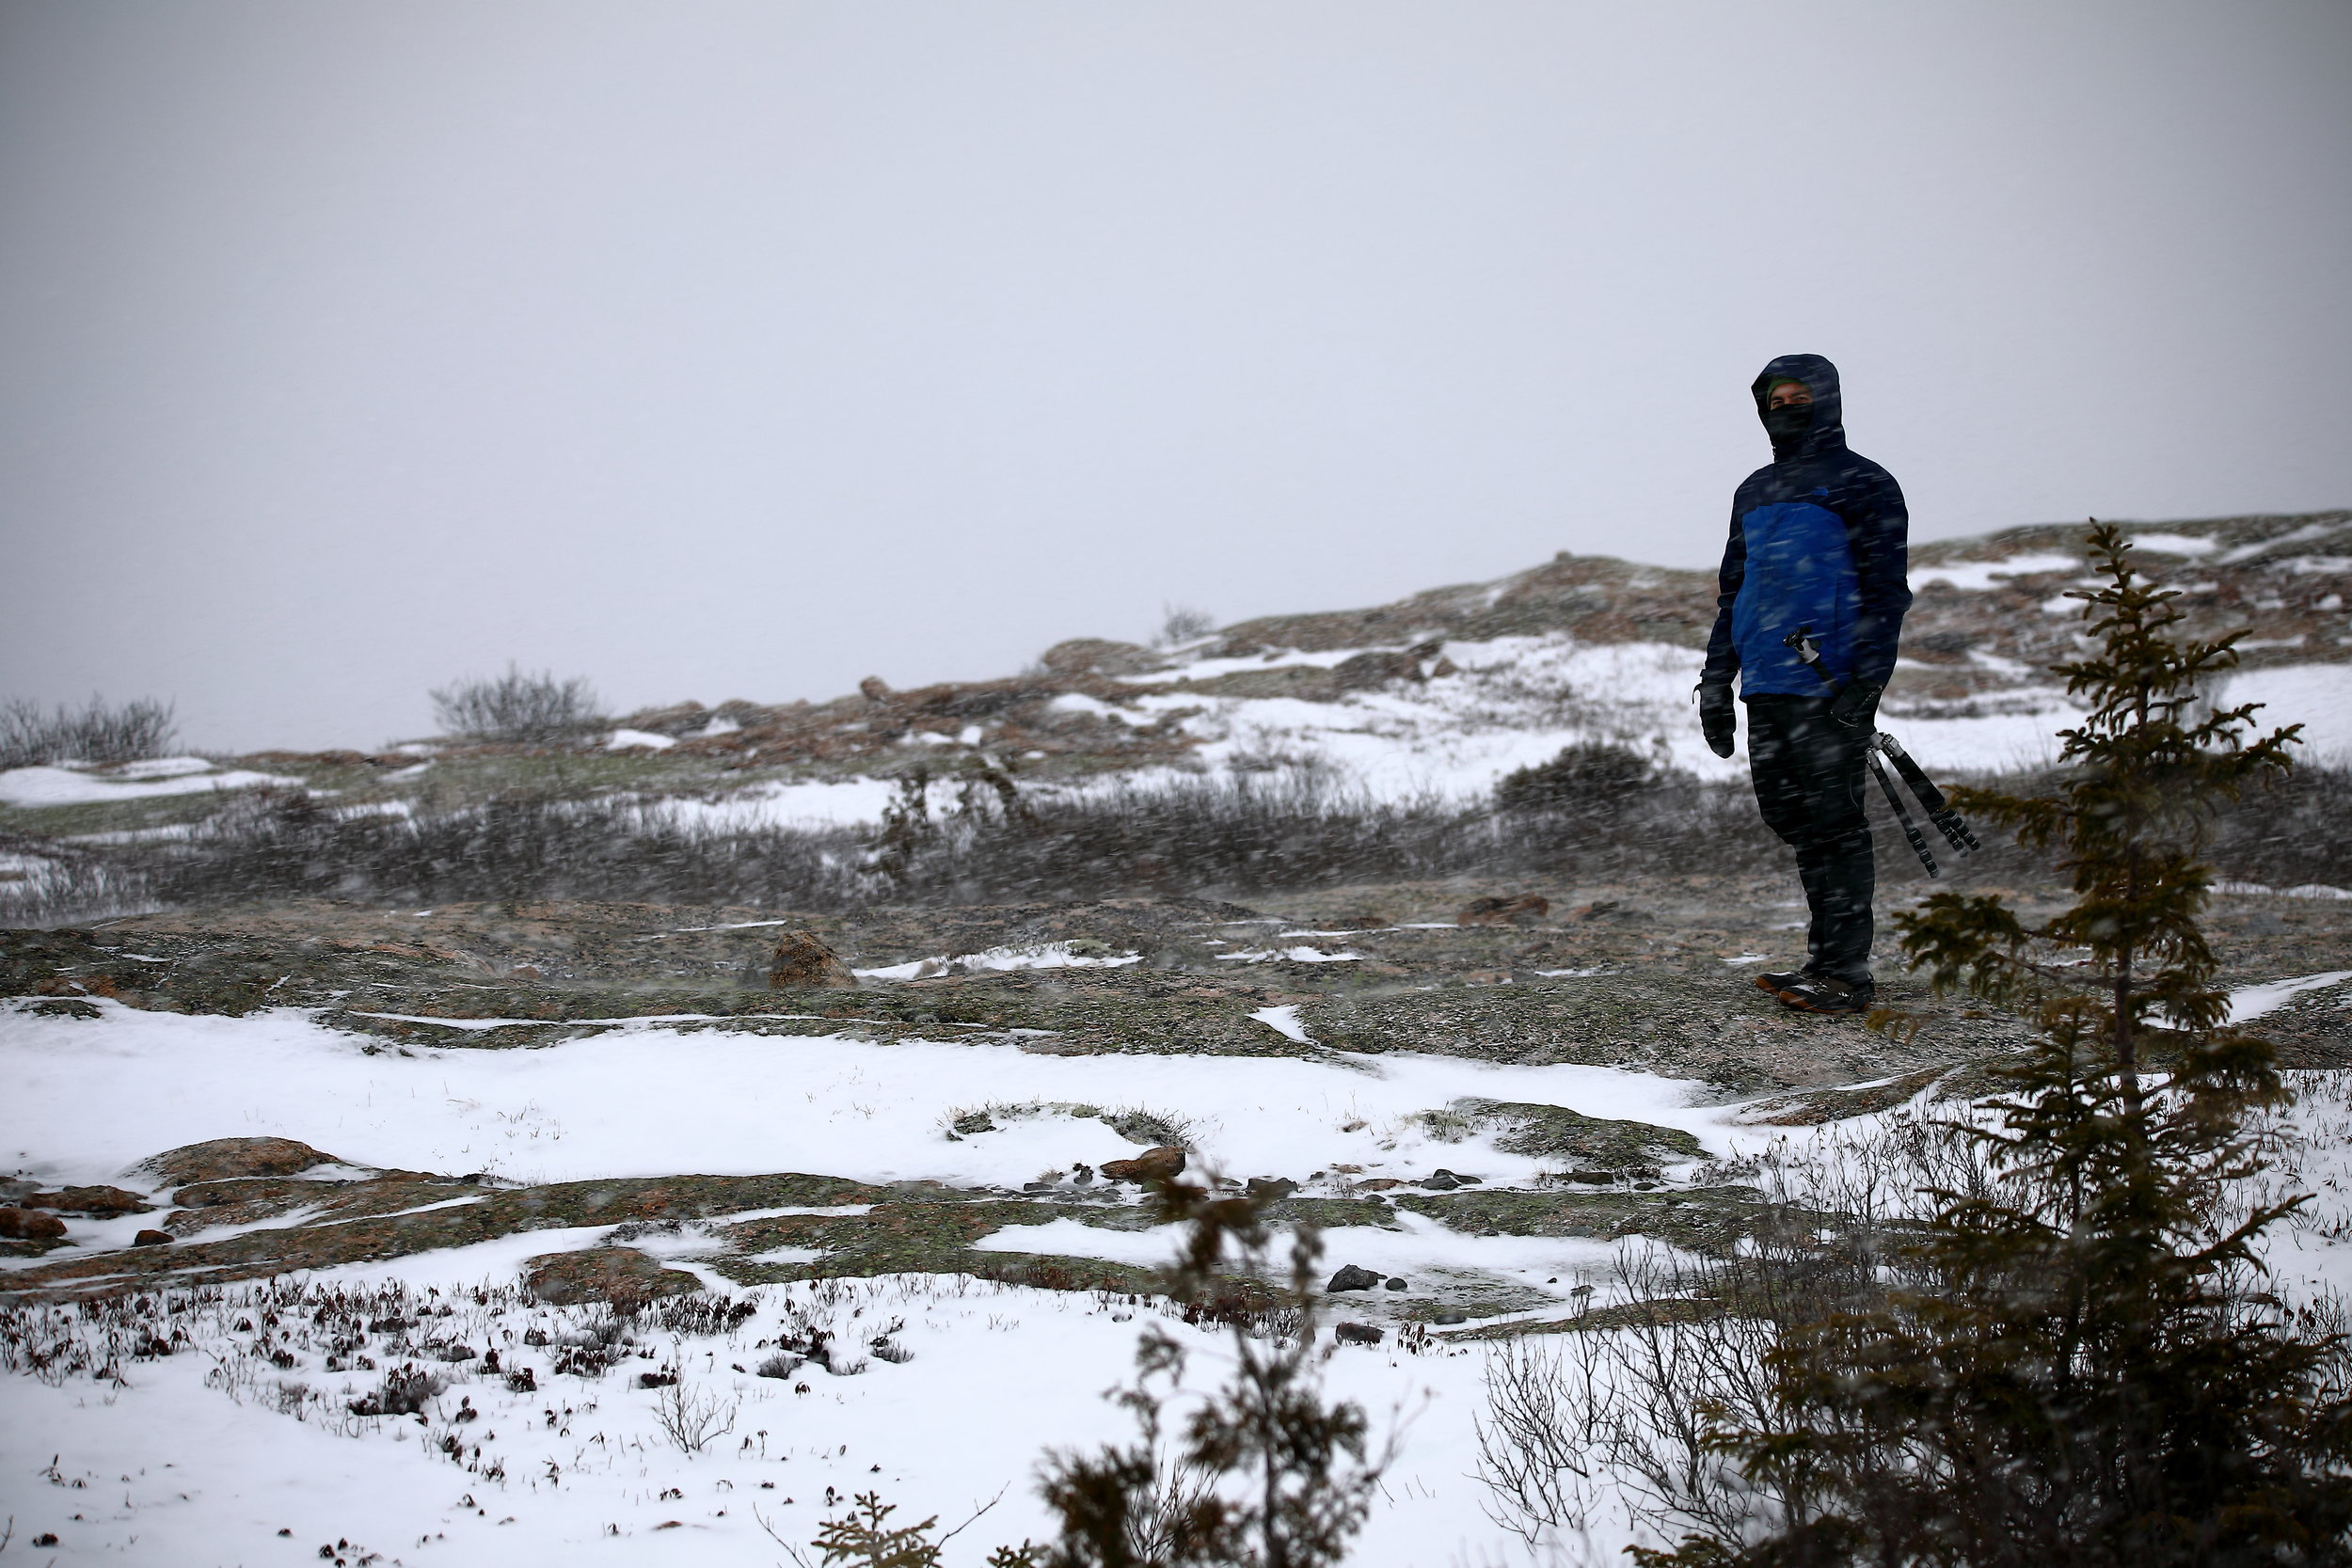 Dale braving the cold on the exposed Sargent Mountain.